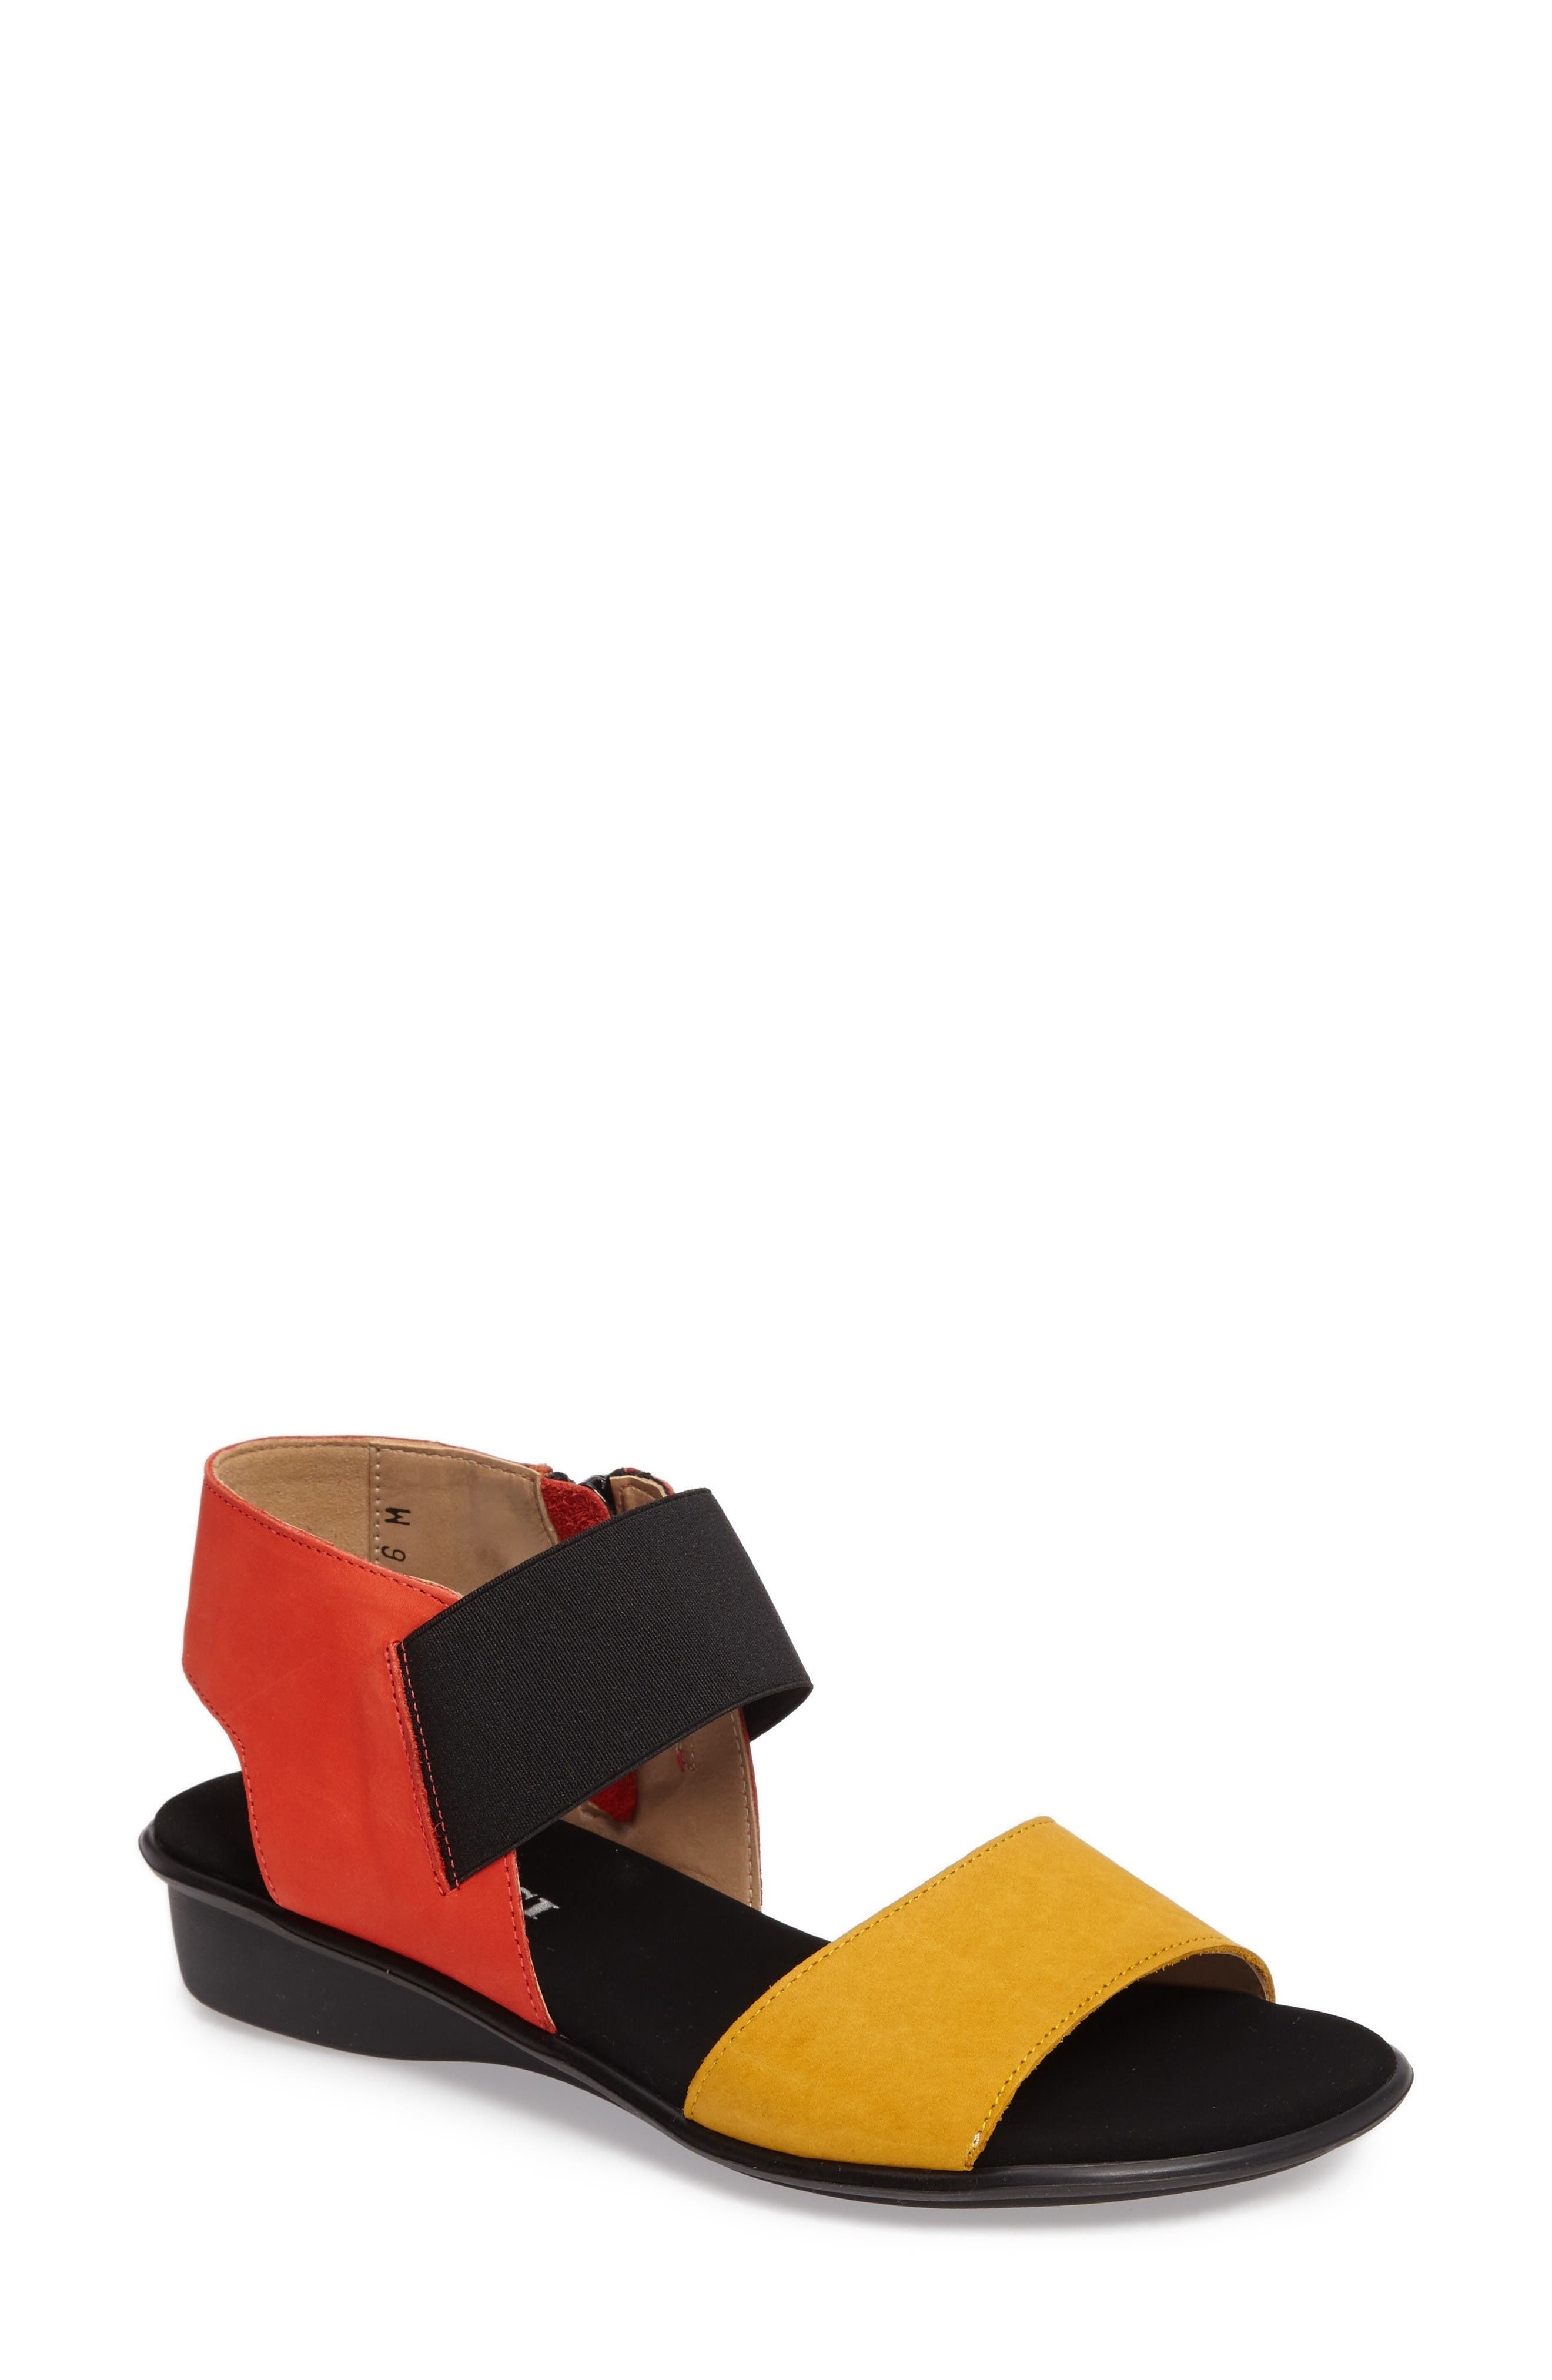 SESTO MEUCCI Eirlys Sandal in Mustard/ Coral Leather